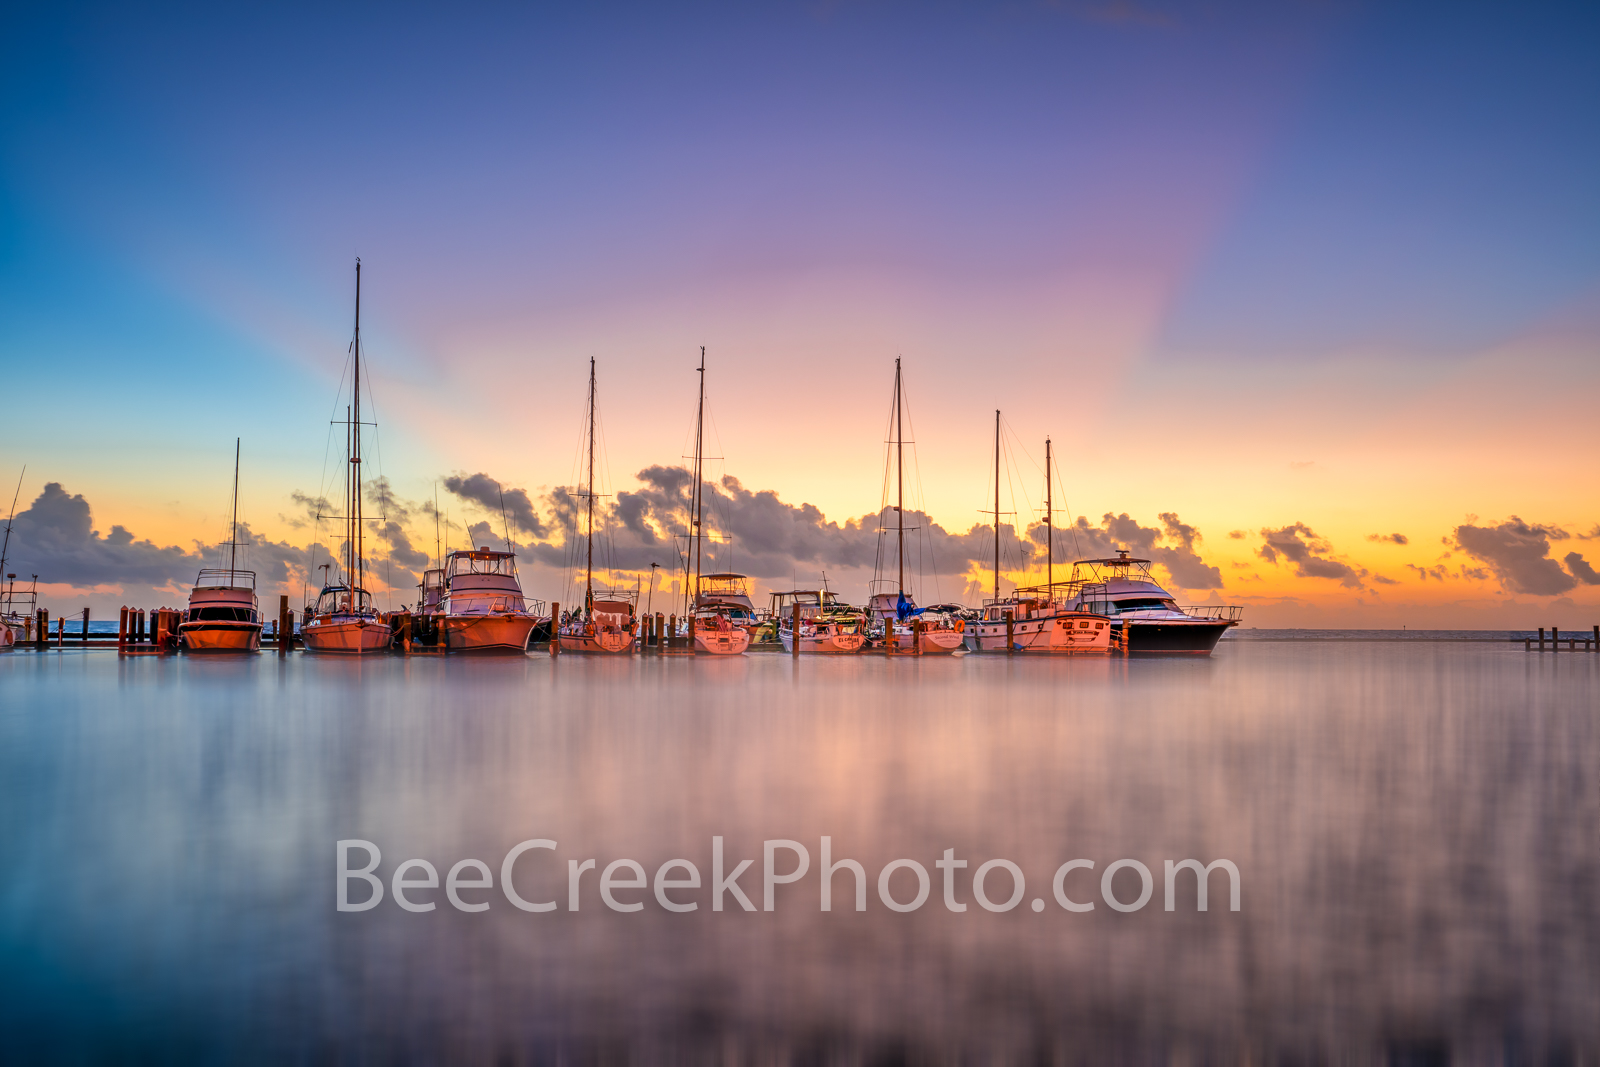 texas, fulton, fulton harbor, dawn, fulton-rockport, texas coast, coastal, ocean, waterscape, seascape, marina, gulf of mexico, gulf, magic hour, colorful, fishing, boat, boats, sailboats, sunrise, su, photo